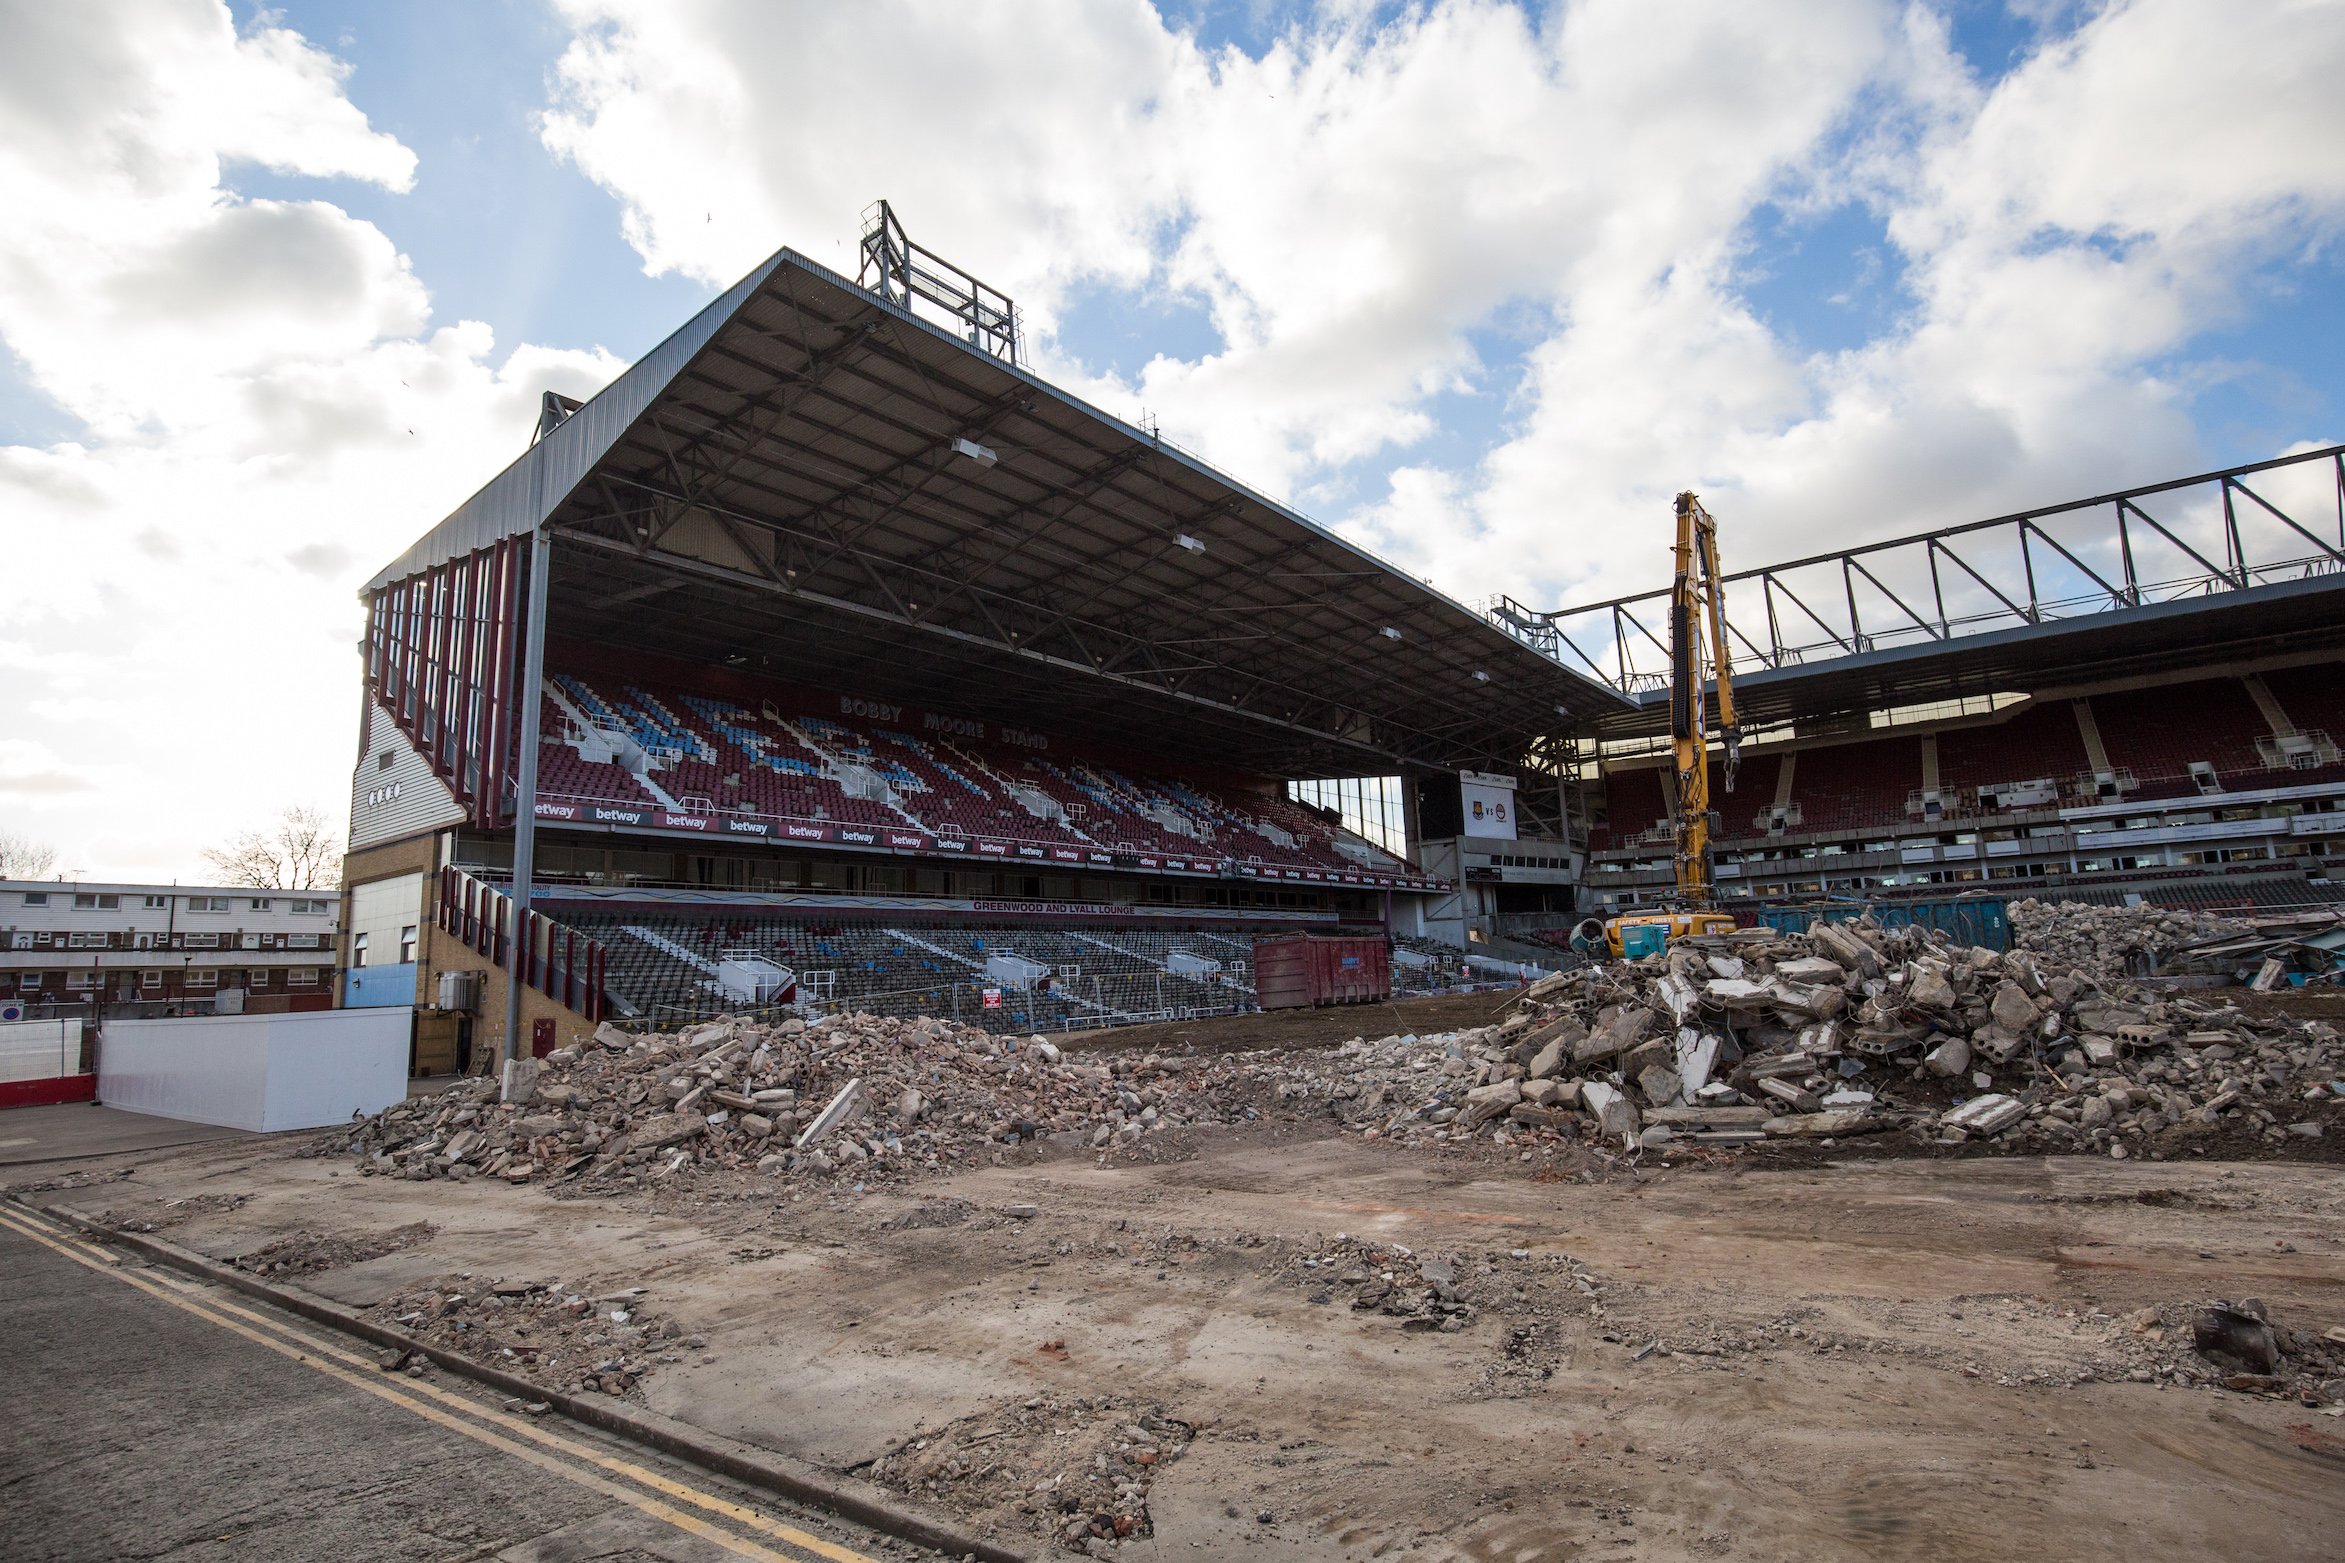 West Ham's Boleyn Ground Six Months After The Club Moved Out